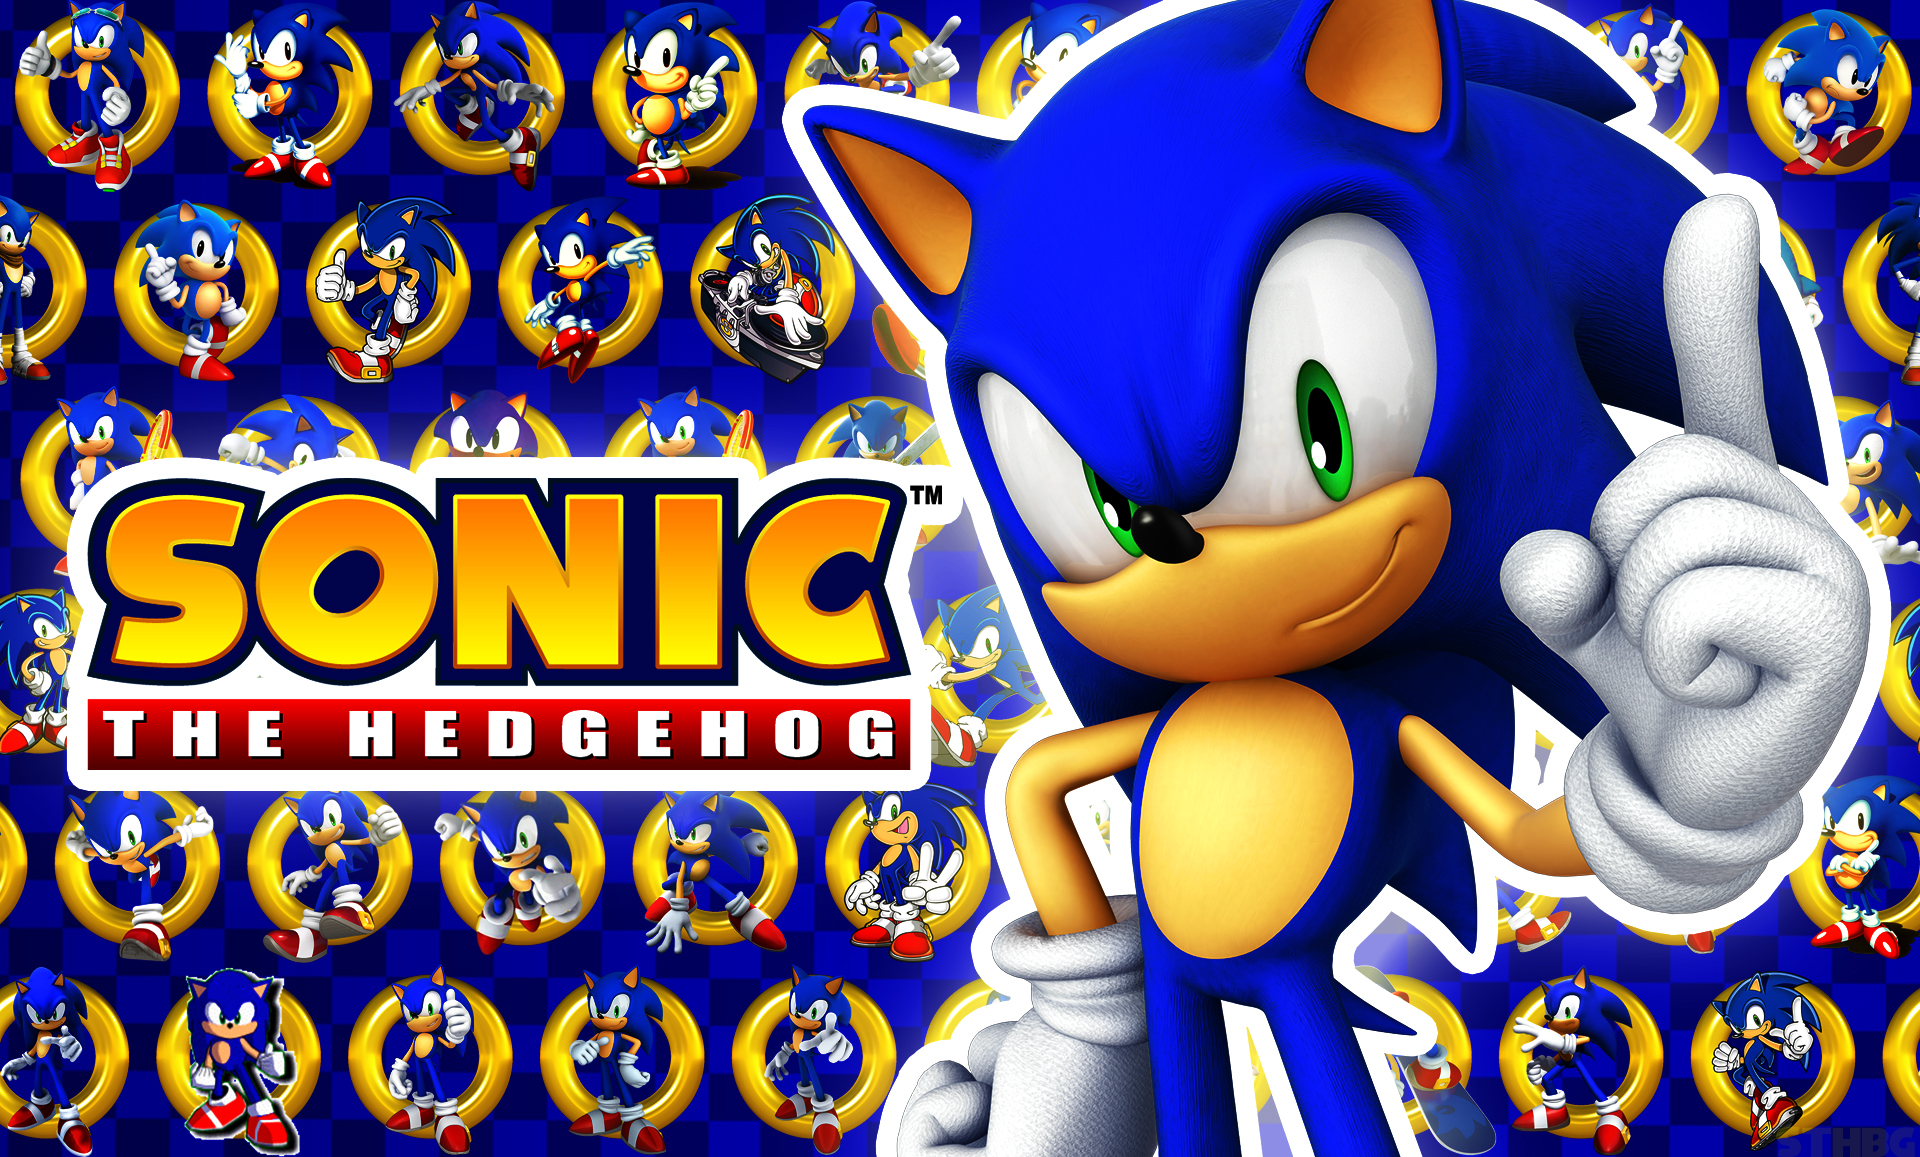 sonic the hedgehog wallpaper by sonicthehedgehogbg on